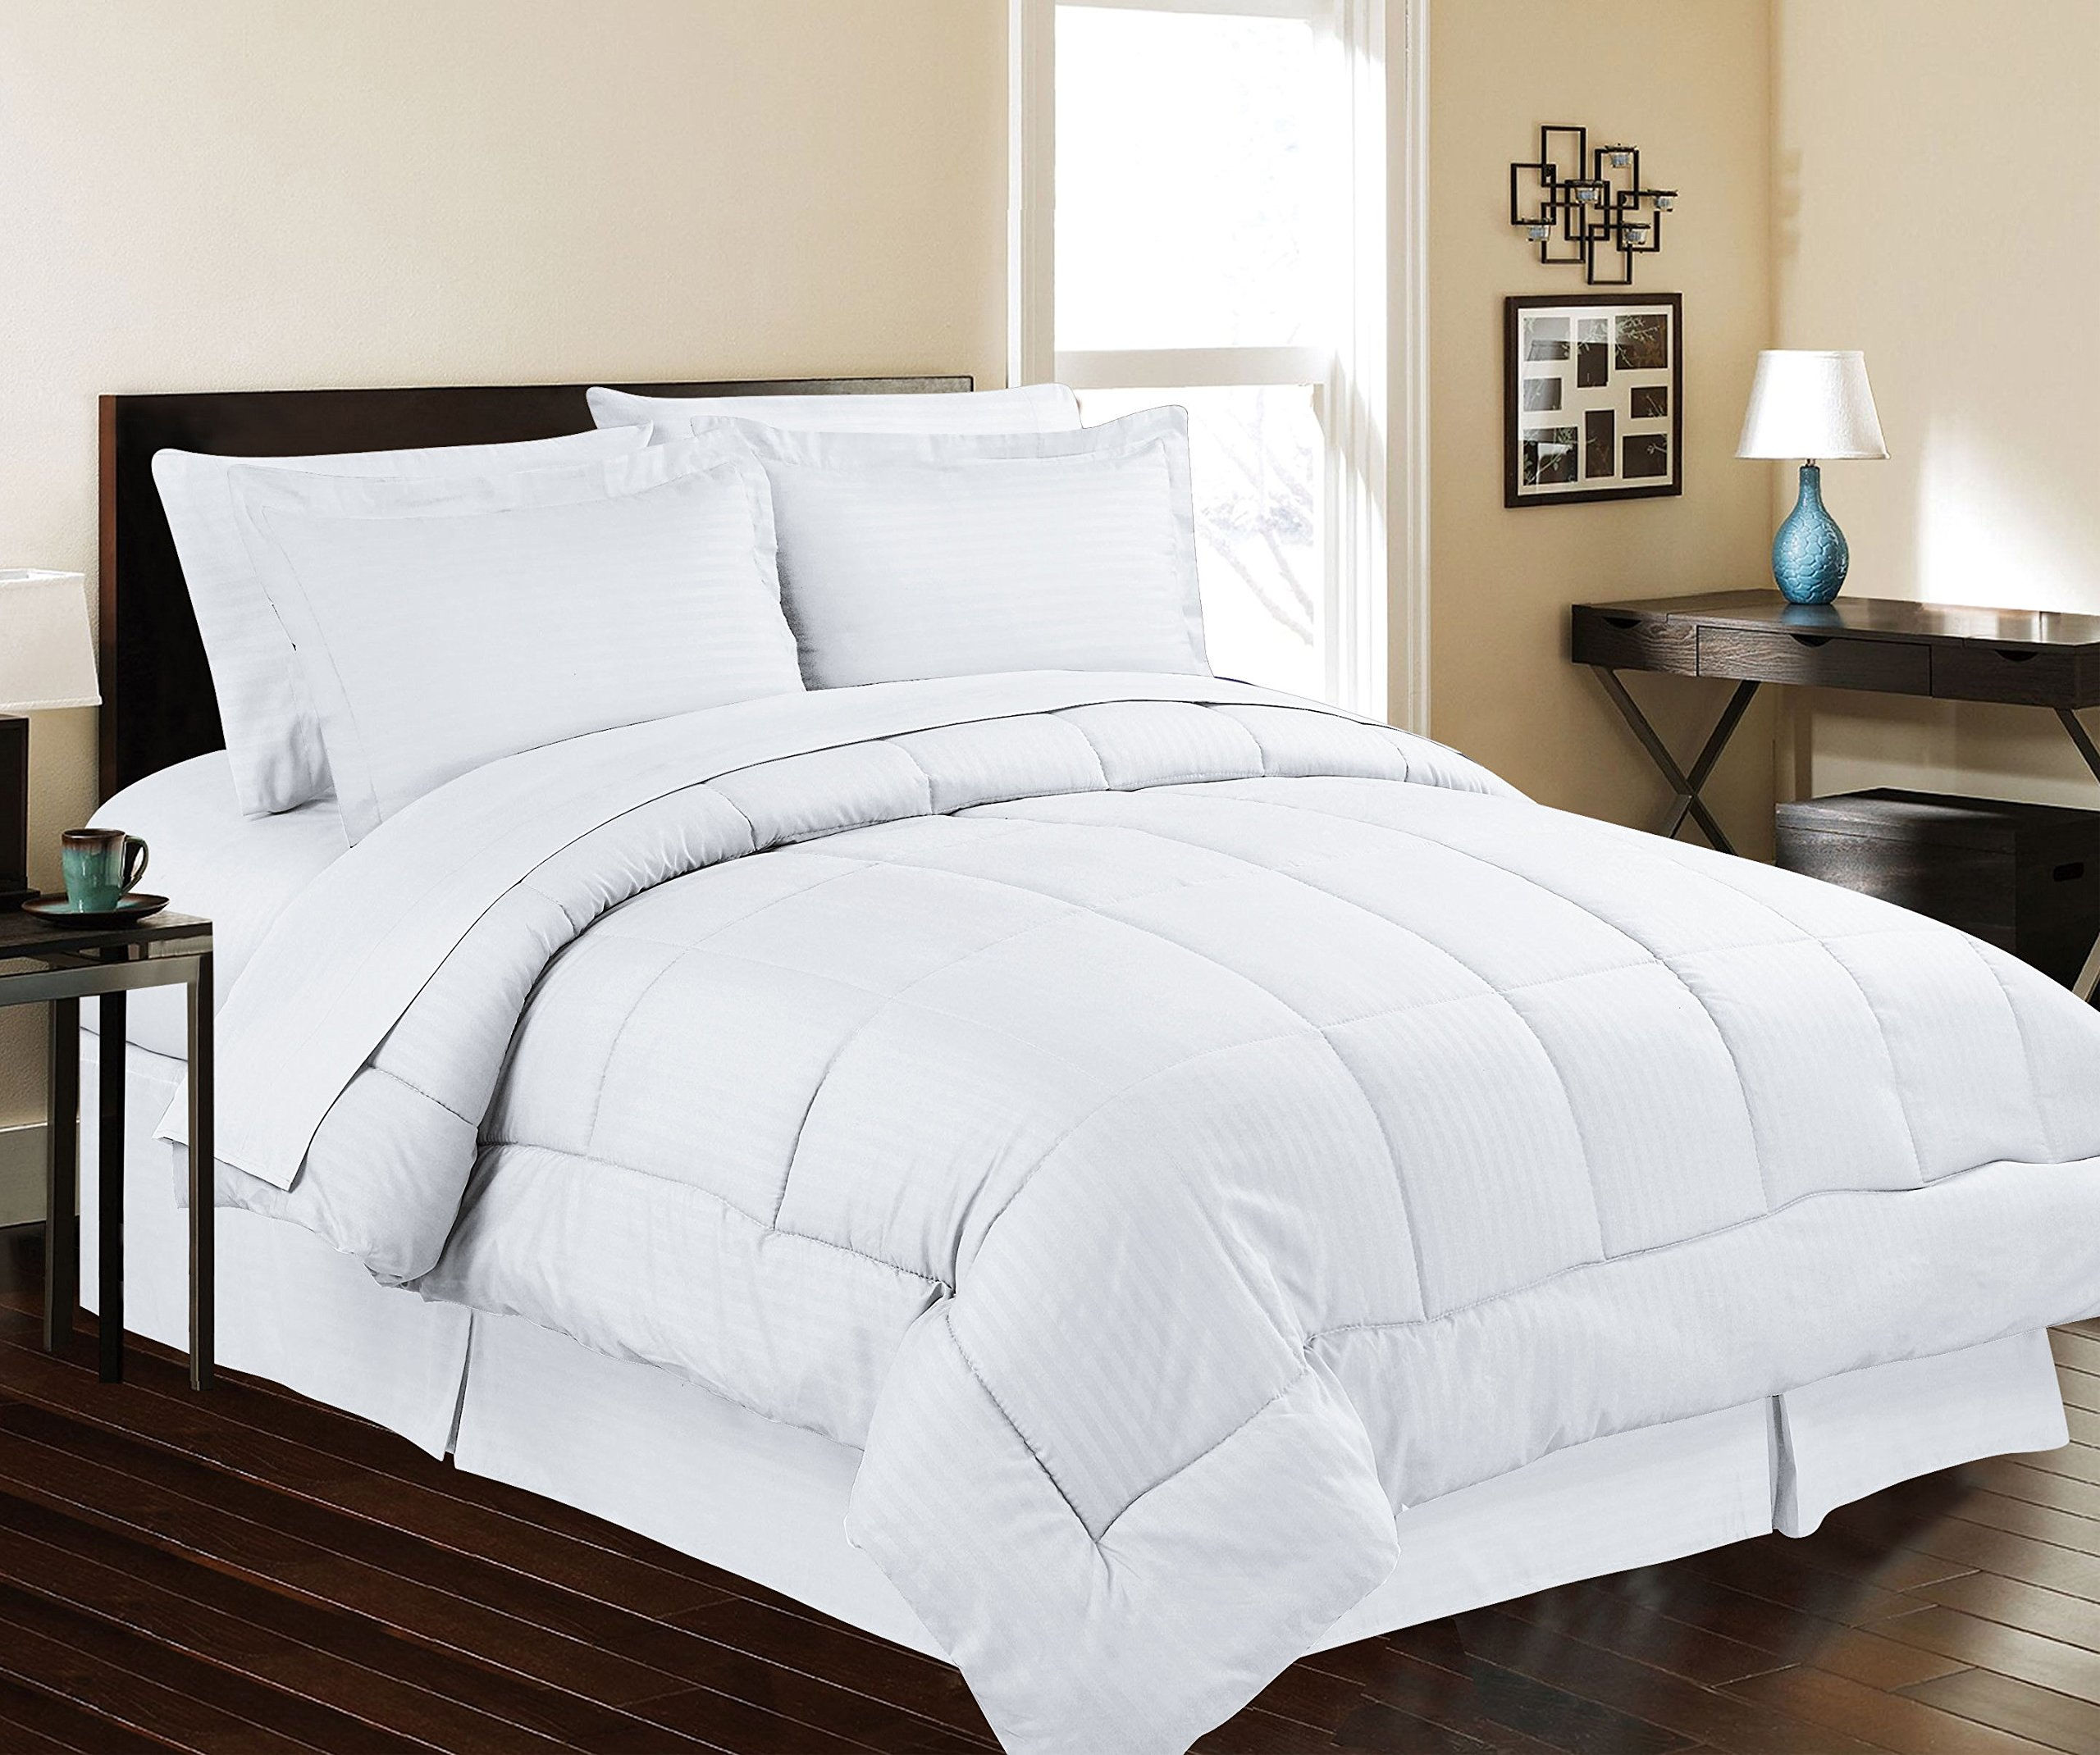 Décor&More Hotel Collection Queen Size 8 Piece Bed in a Bag Down Alternative Comforter Set - White